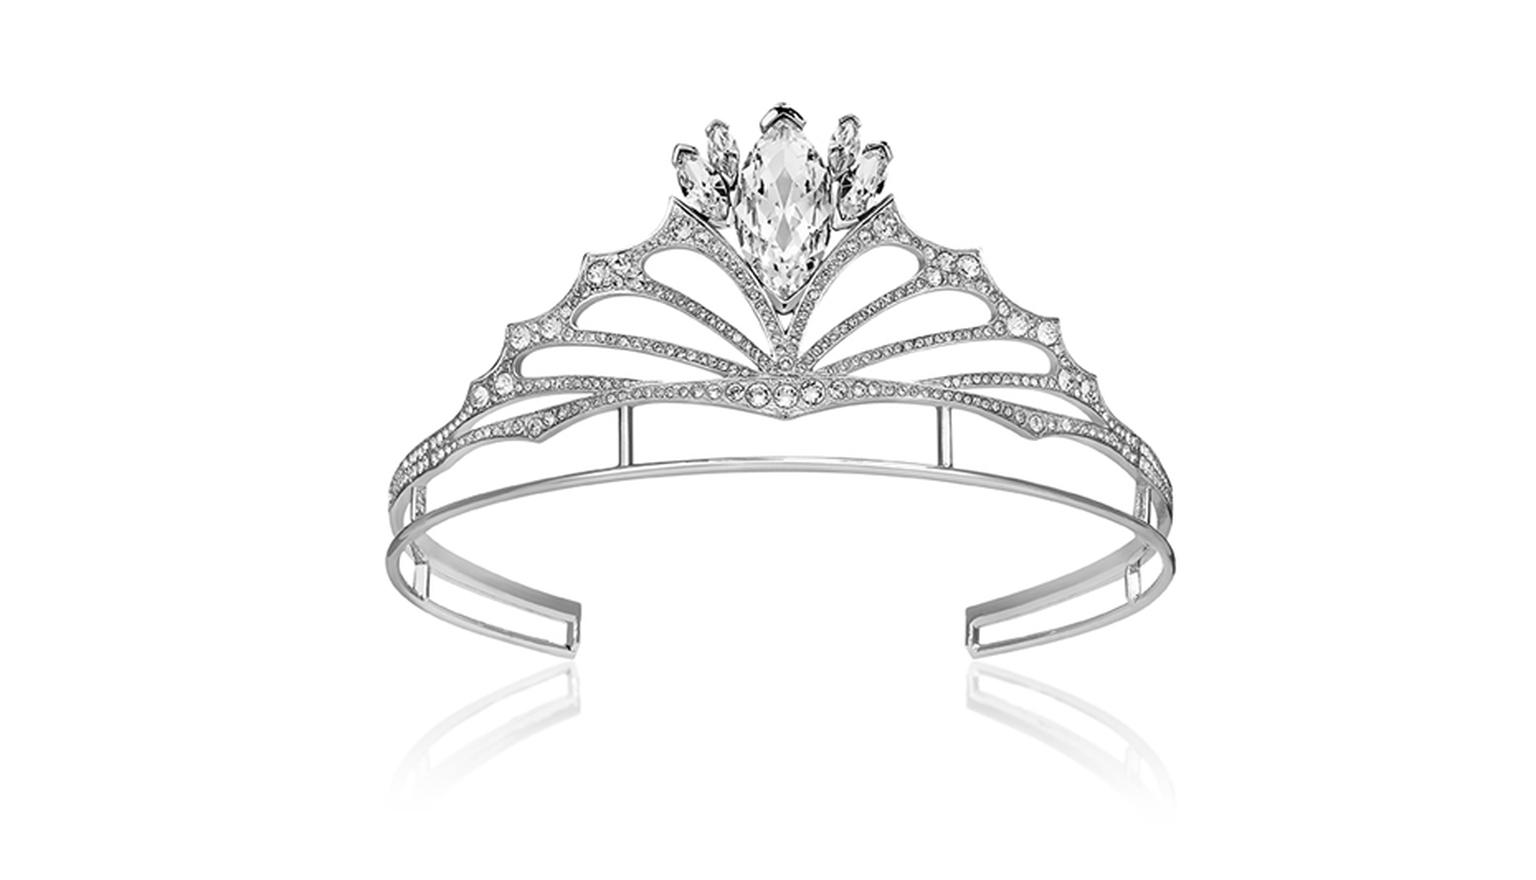 The Stephen Webster Fly By Night tiara sparkes with thousands of Swarovski crystals